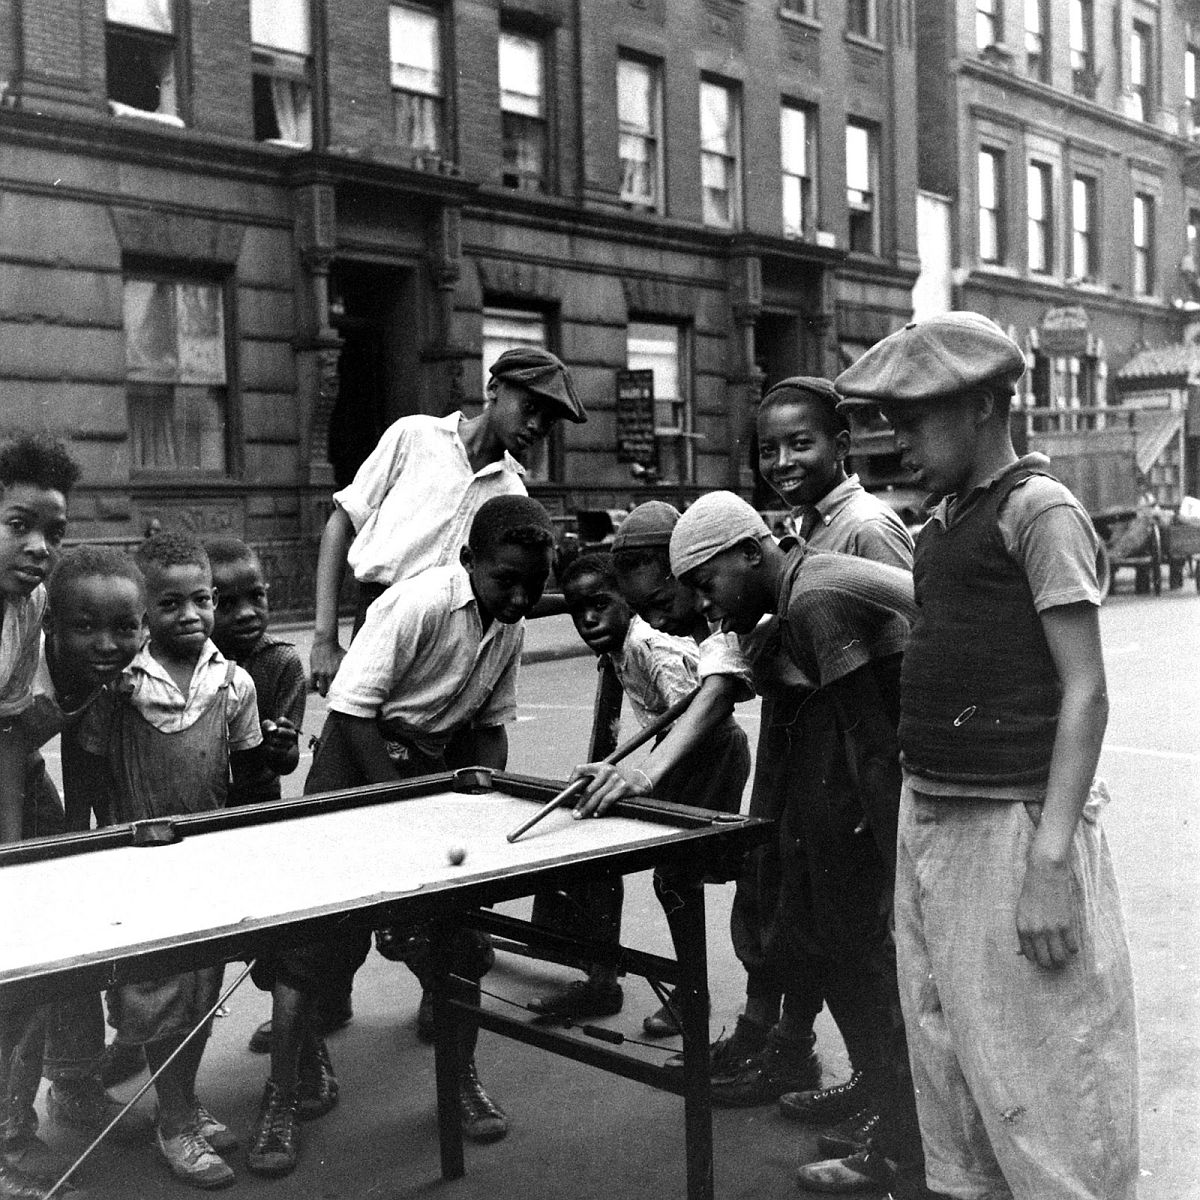 Boys play a makeshift game of pool on a Harlem street, 1938.